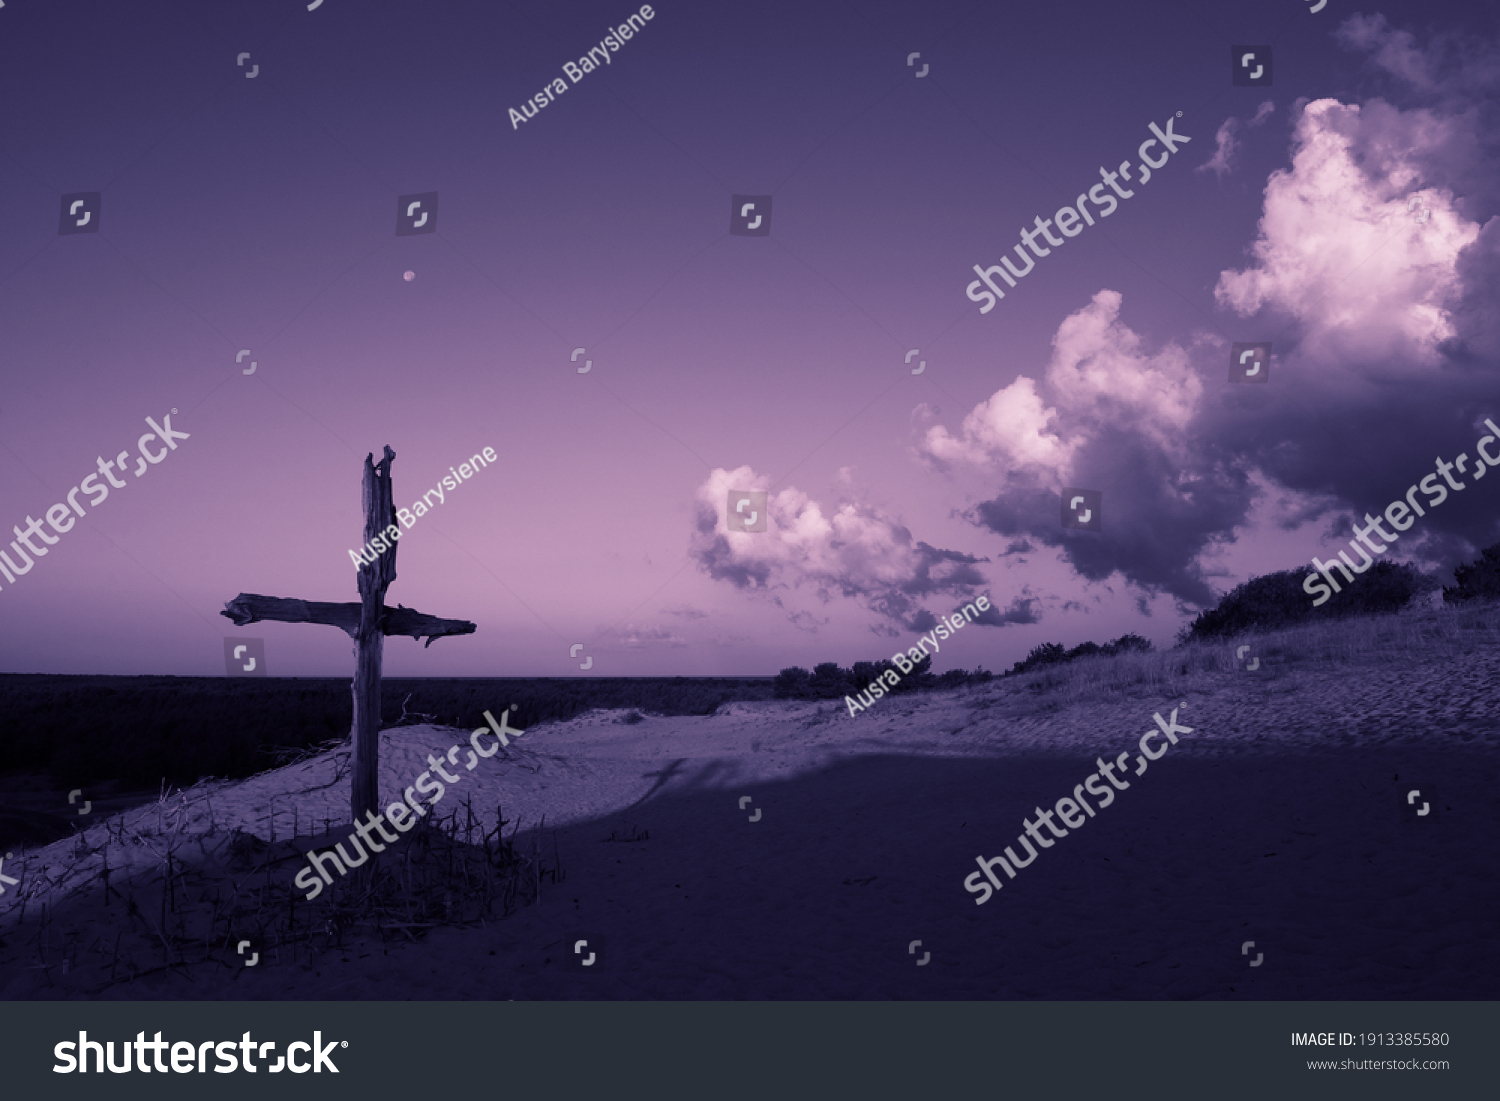 Purple landscape with wooden Cross or crucifix.  Concept for Lent Season, Holy Week, Palm Sunday and Good Friday. #1913385580